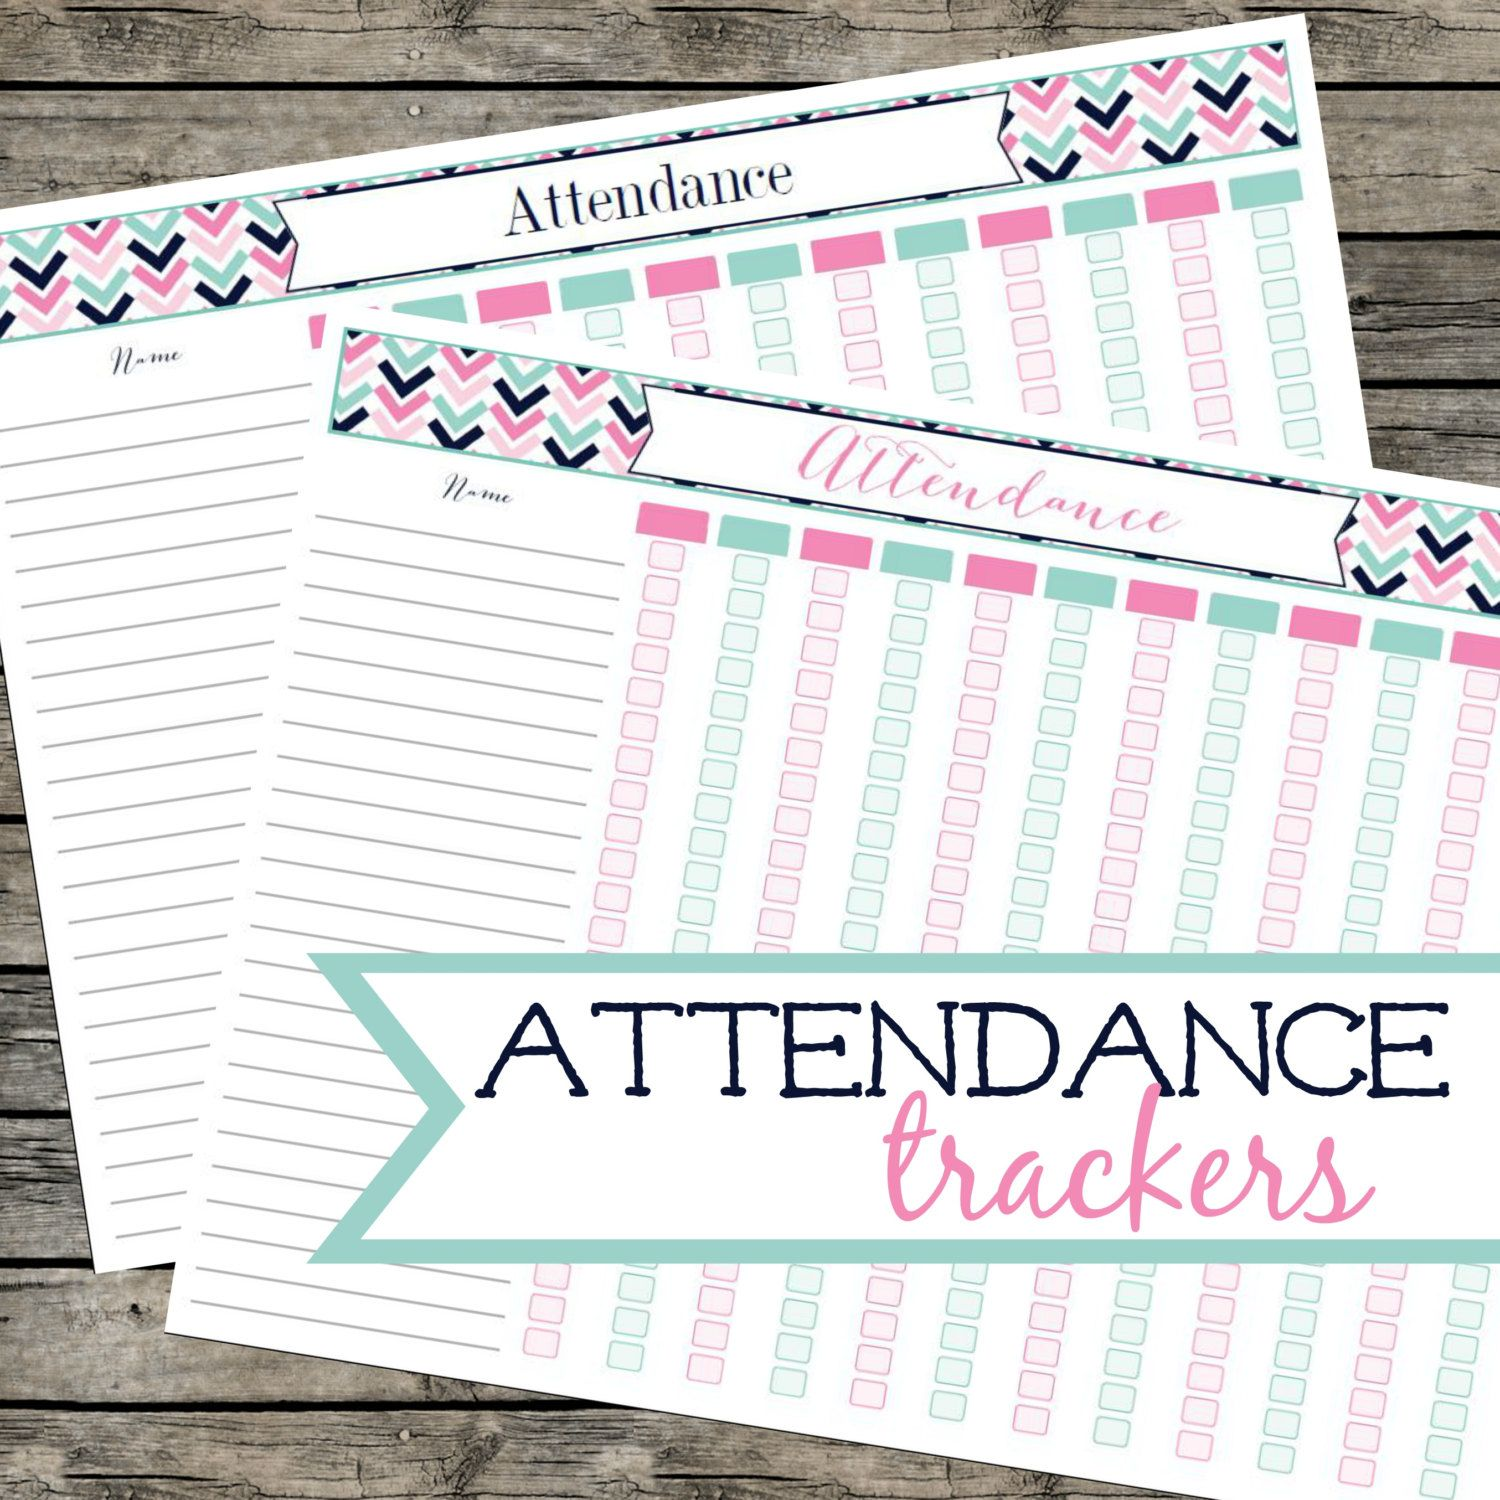 Atendance School Worksheet Printables